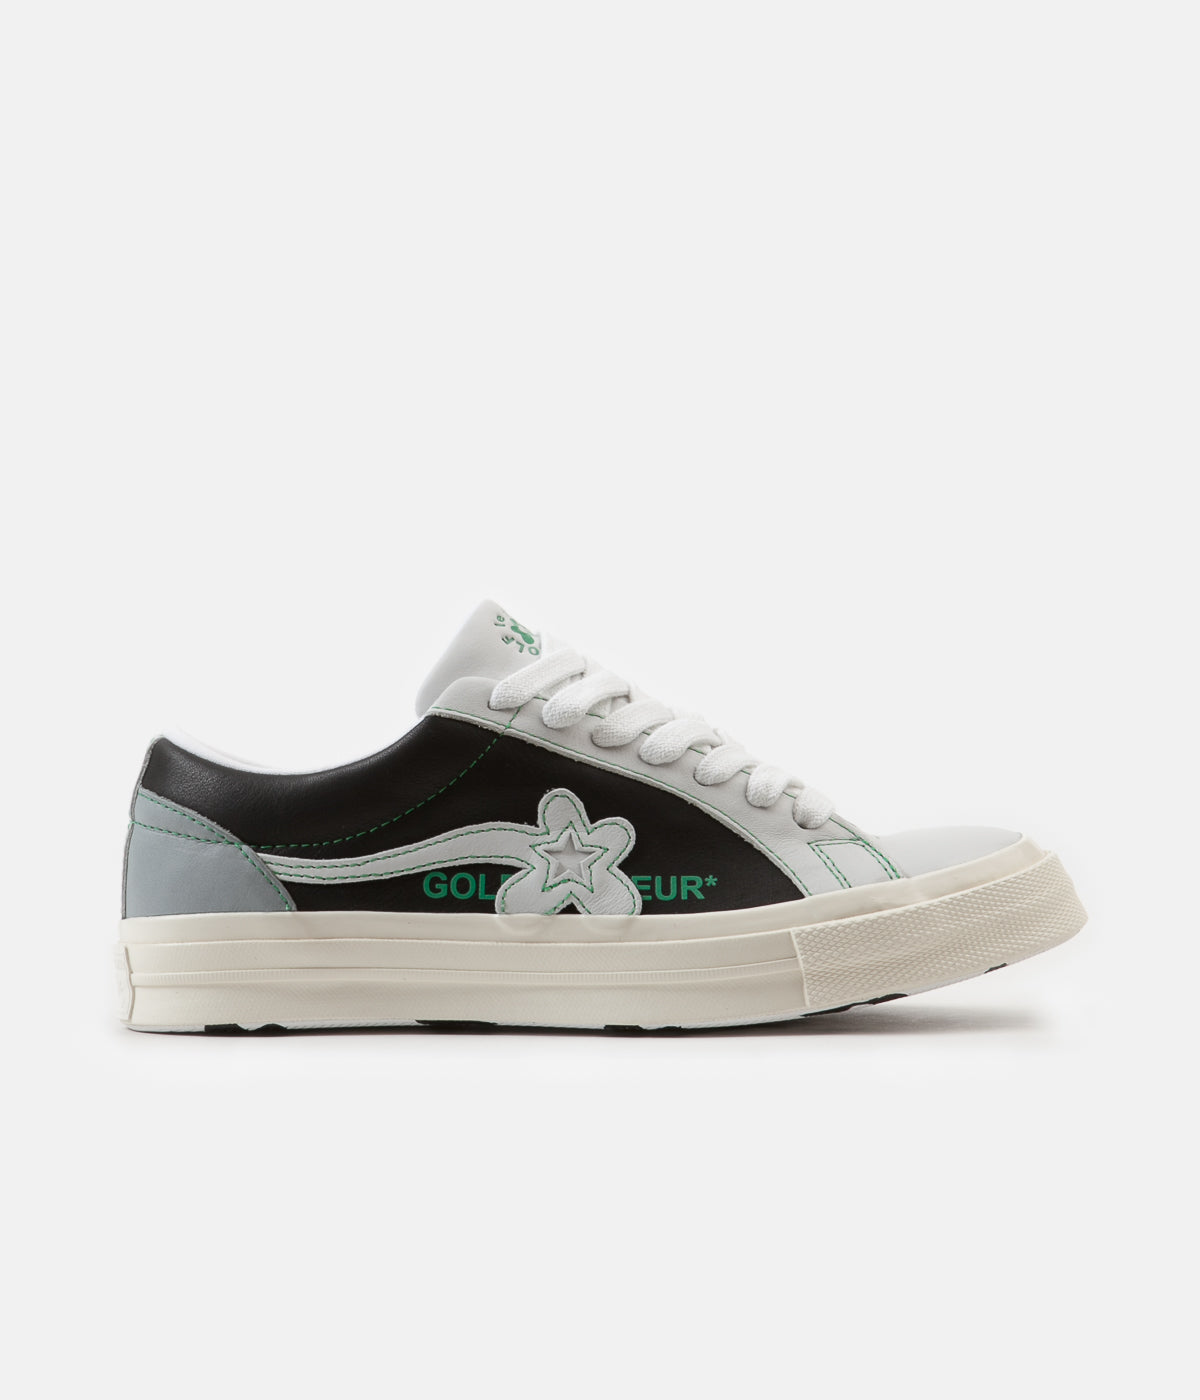 f935eac0ca46 ... Converse Golf Le Fleur Ox Shoes - Barely Blue   Black   Egret ...